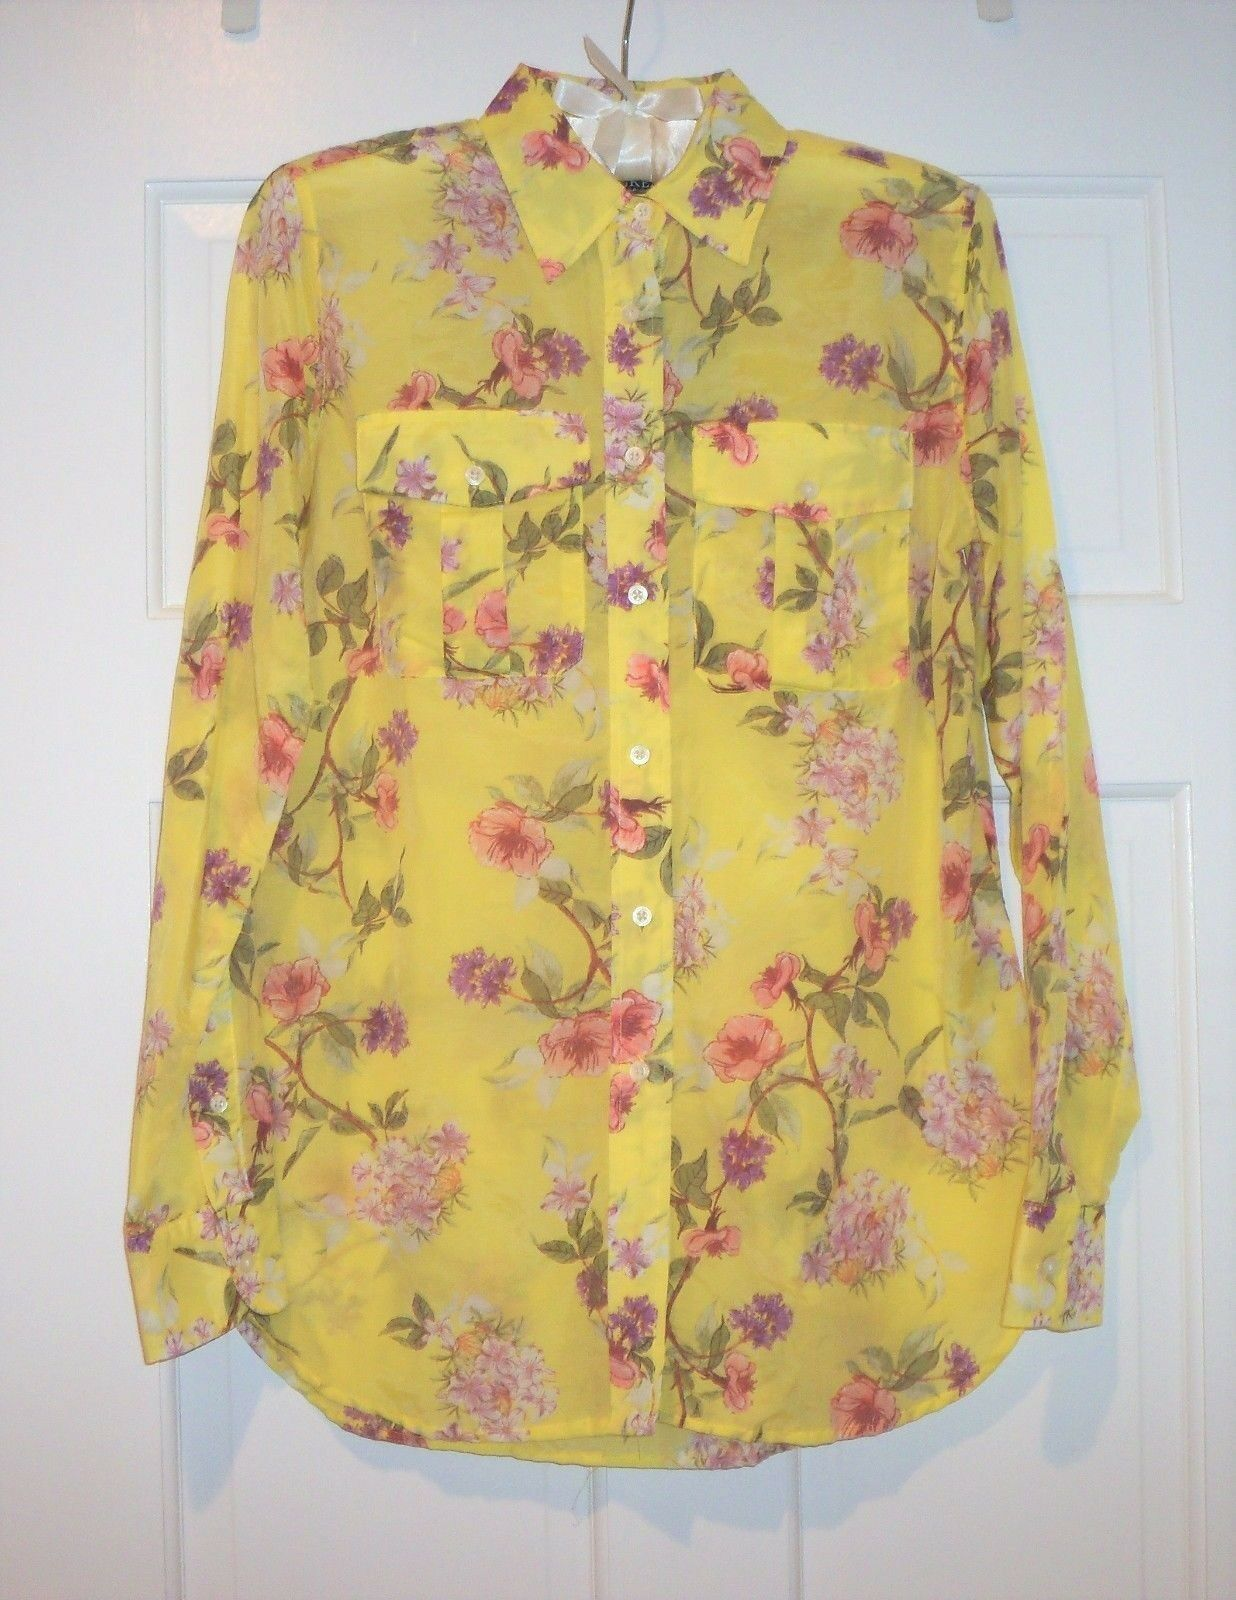 NWT LRL Ralph Lauren Gelb Floral Cotton Blend Blouse Shirt New Small S